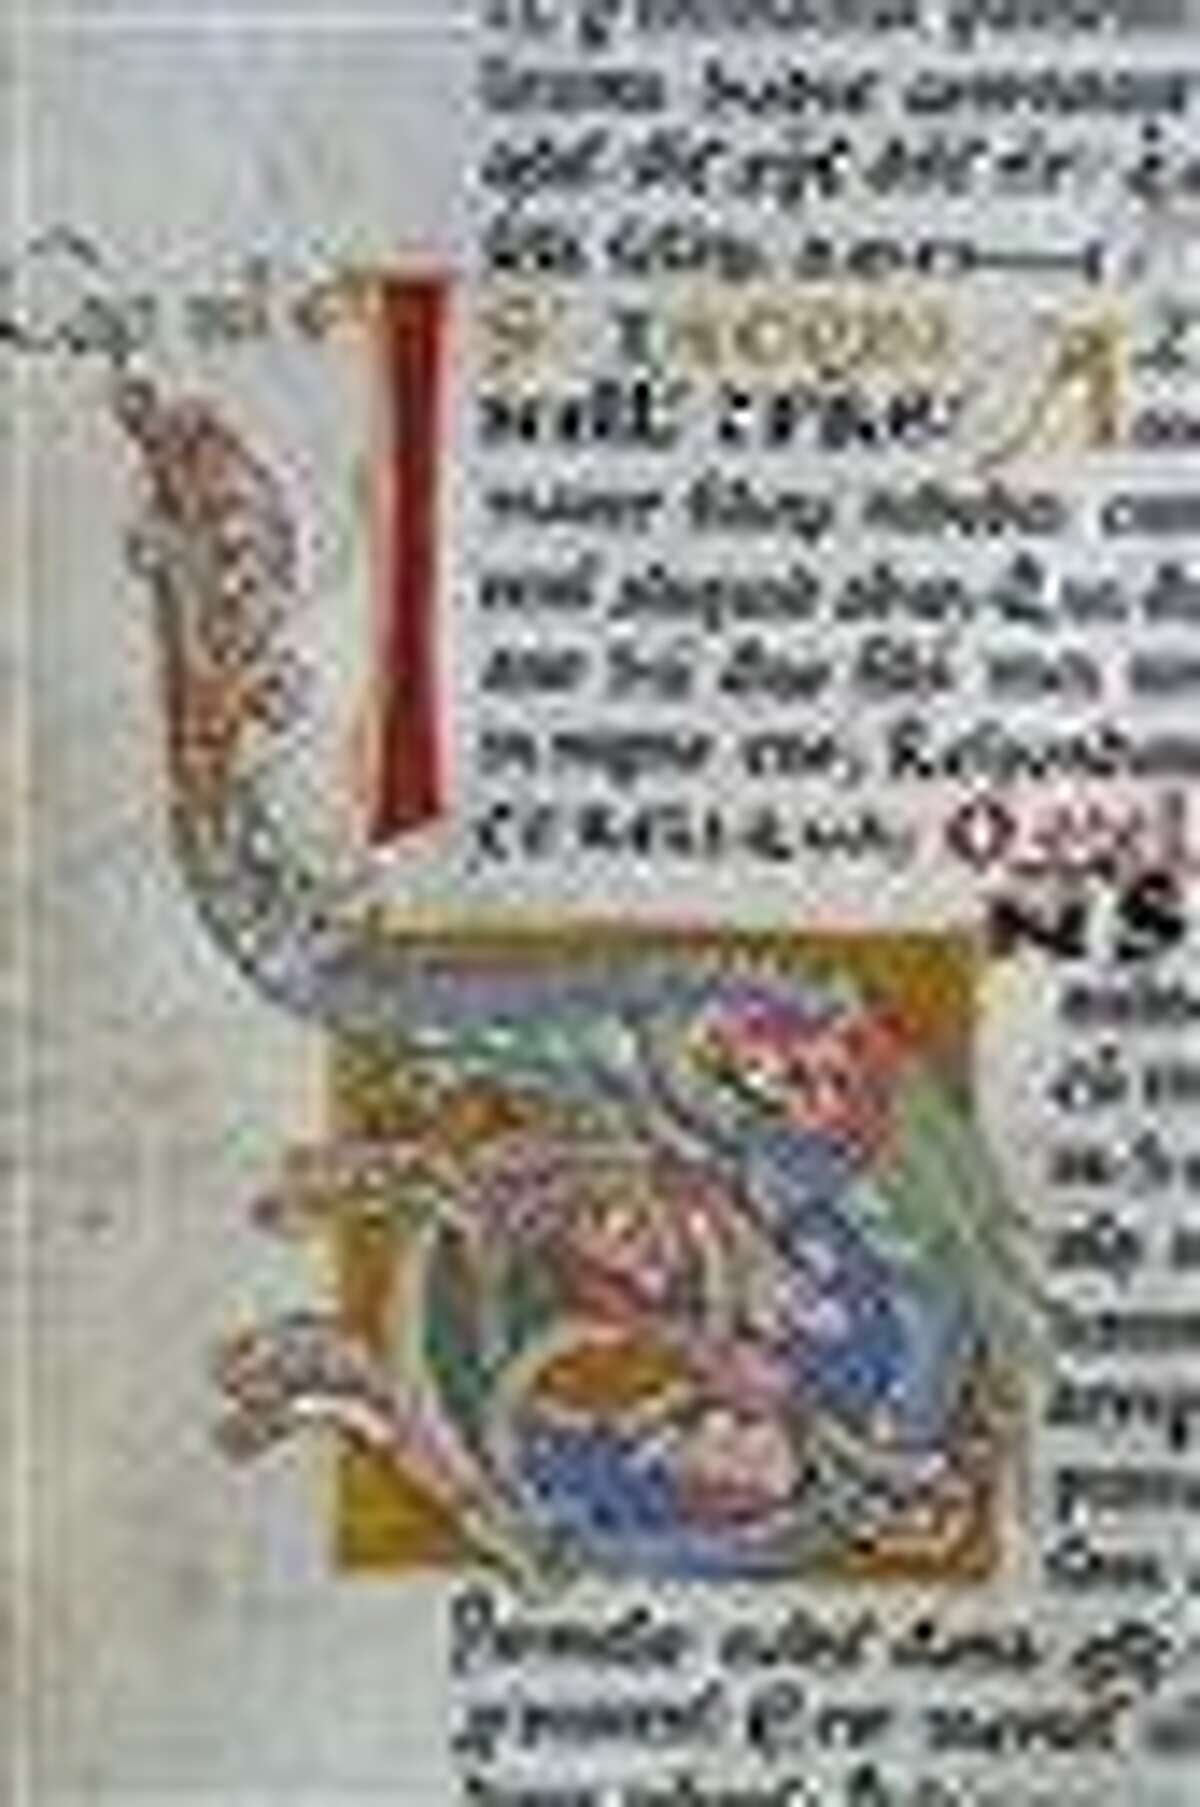 In this photo taken in 2004 in Santiago de Compostela, Spain, one of the pages of the original 12th-century religious Calixtinus Codex manuscript is seen in the cathedral. Spain's Interior Ministry says police have arrested four people in connection with the theft of the priceless collection of religious manuscripts which police say they have now found in a garage. The missing, richly decorated tome, considered the first guide for people making the ancient Christian pilgrimage known as the Camino de Santiago, the Spanish name for the Way of St. James, was stolen a year ago. Associated Press